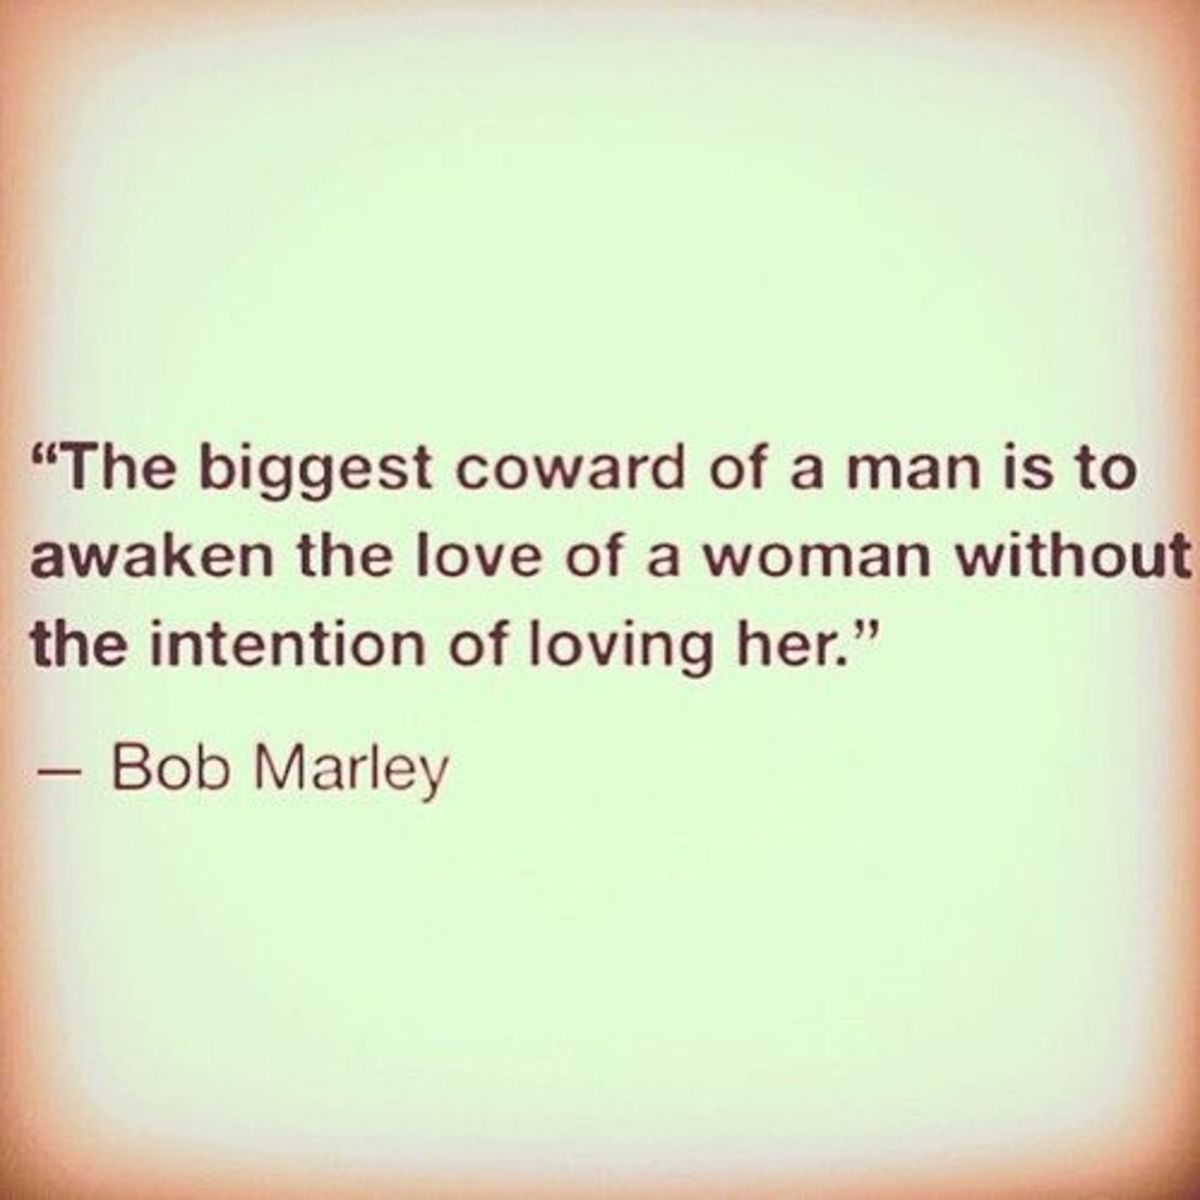 Bob Marley puts it so well. The biggest coward of a man is to awaken the love of a woman without the intention of loving her - Bob Marley